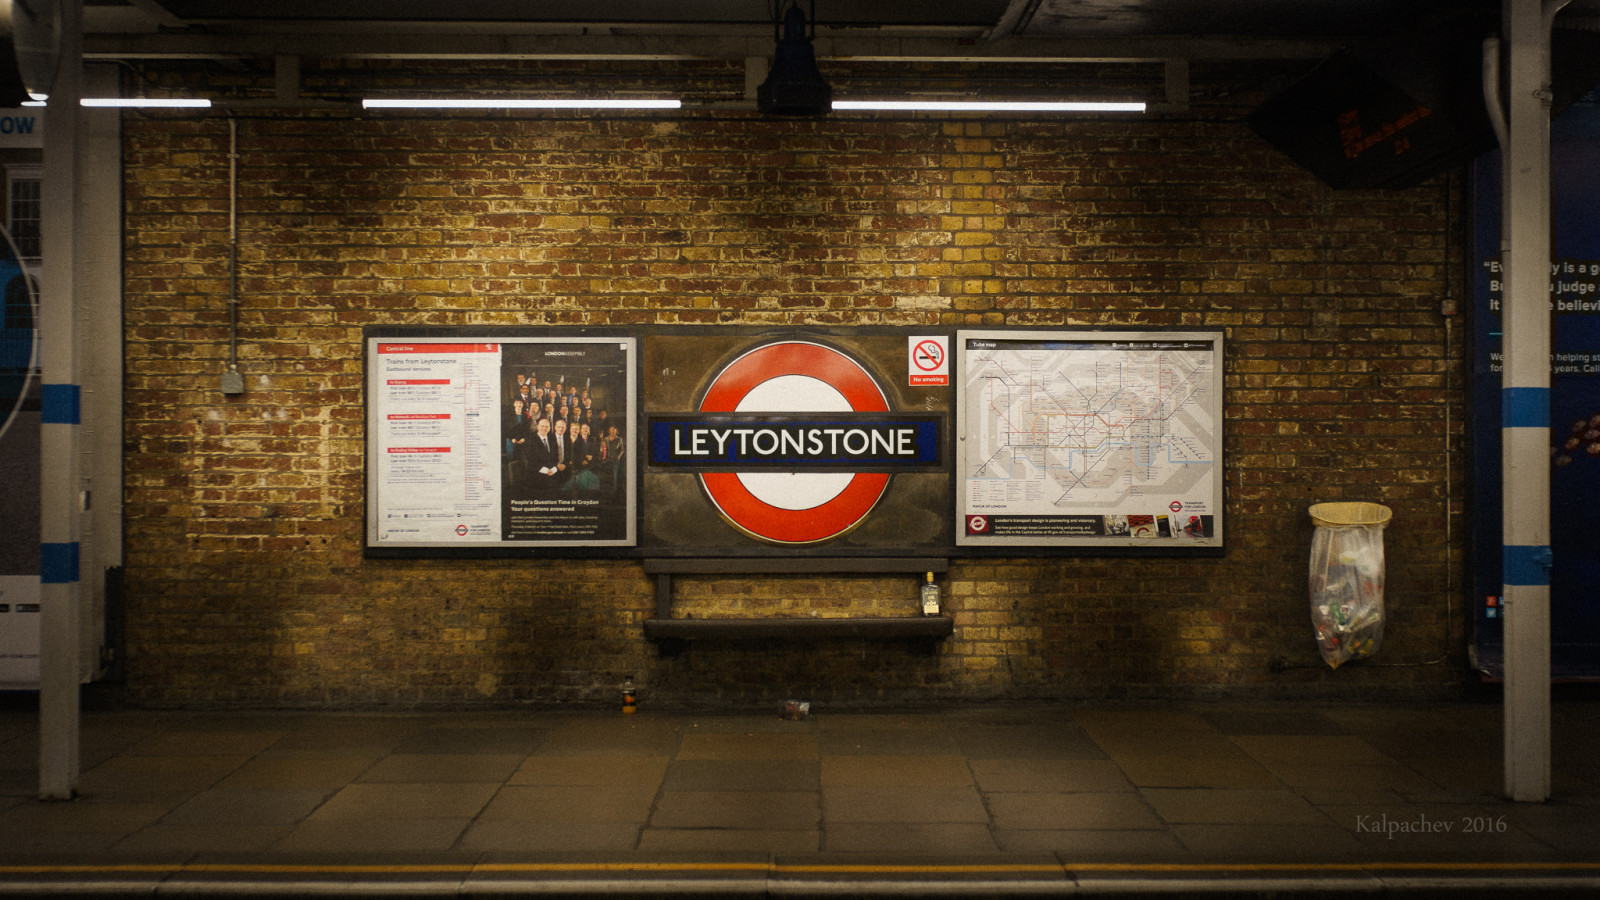 Leytonstone tube station, London